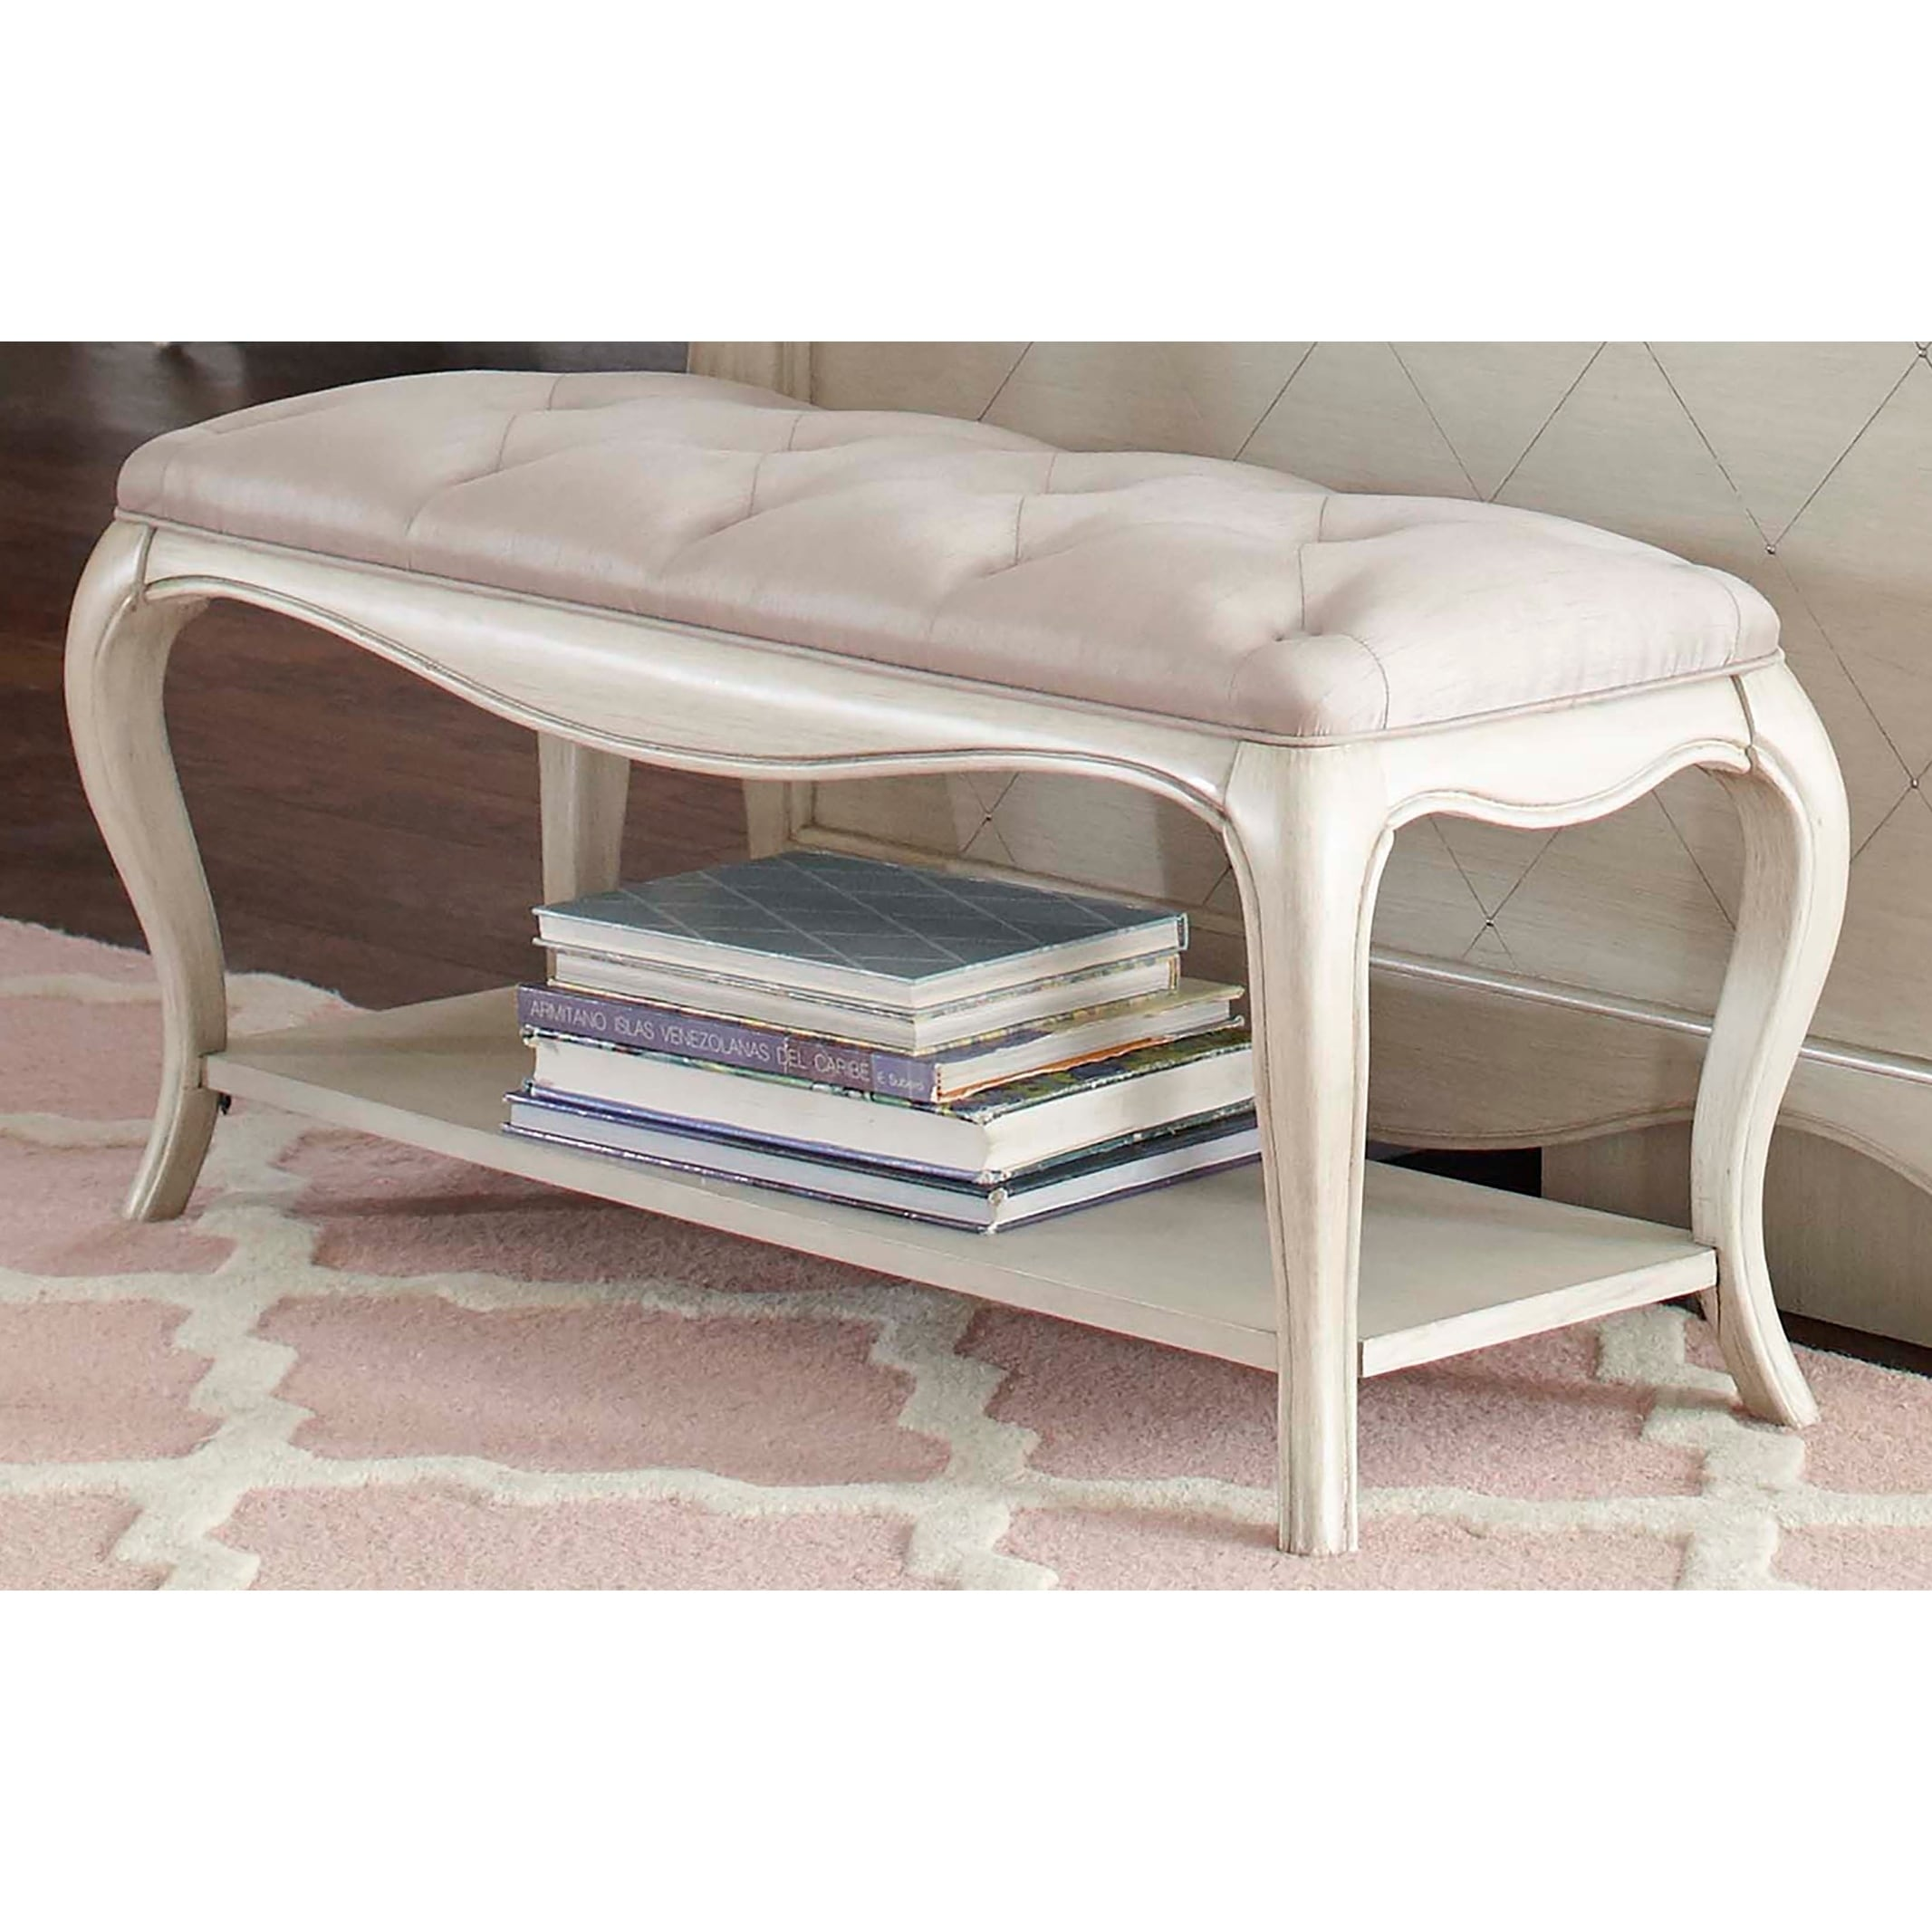 Hillsdale Angela Bed Bench with Tufted Top Opal Grey Free